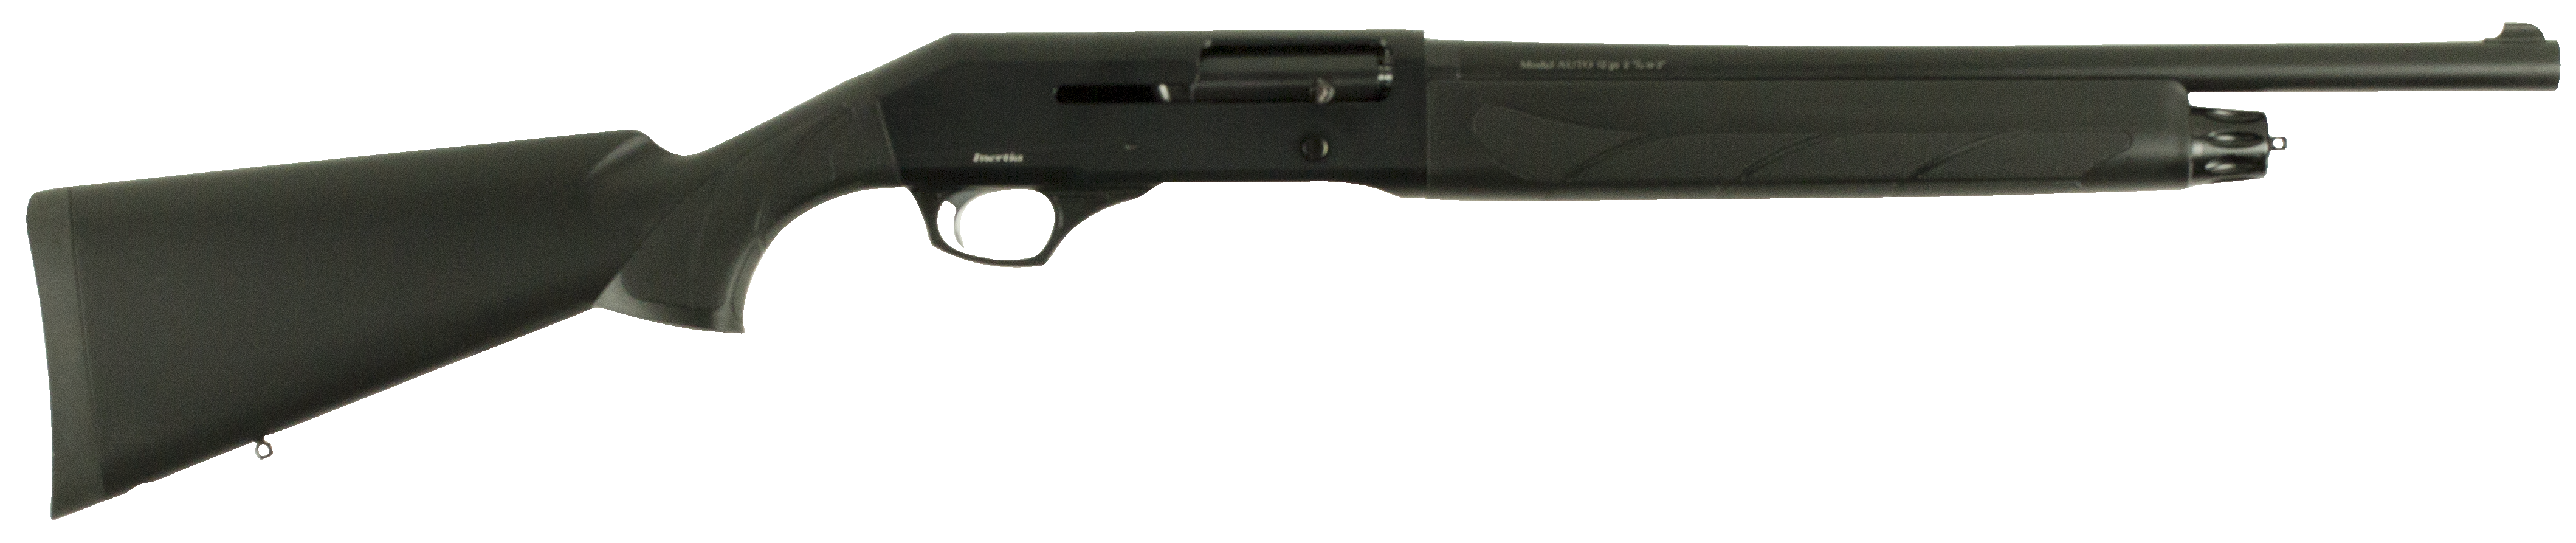 Dickinson AK212T Defense Semi-Automatic 12 Gauge 18.5